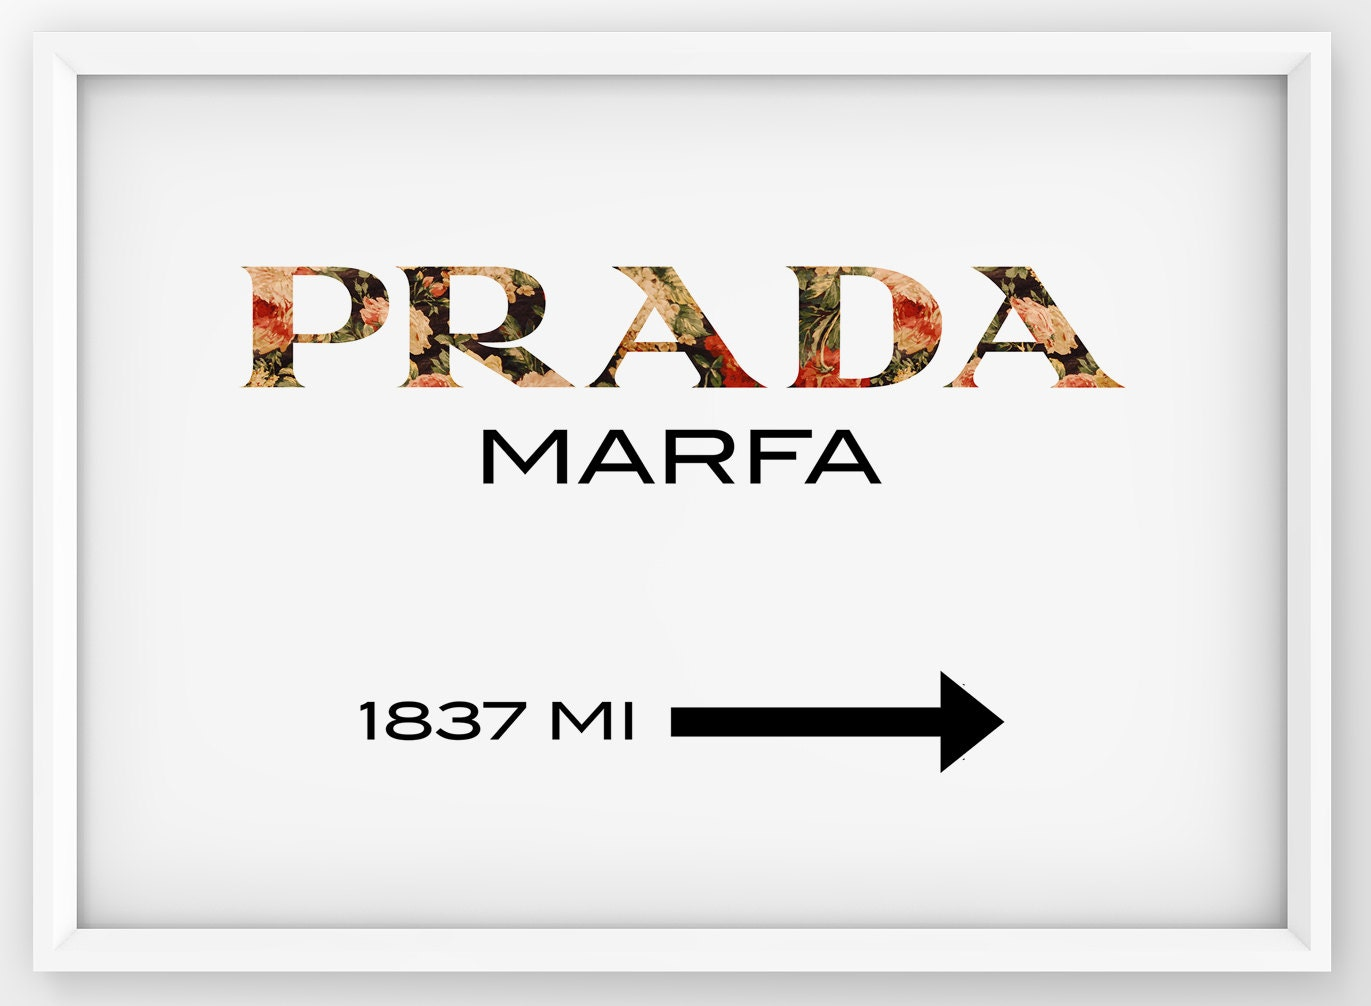 floral prada marfa sign prada marfa print prada logo poster. Black Bedroom Furniture Sets. Home Design Ideas